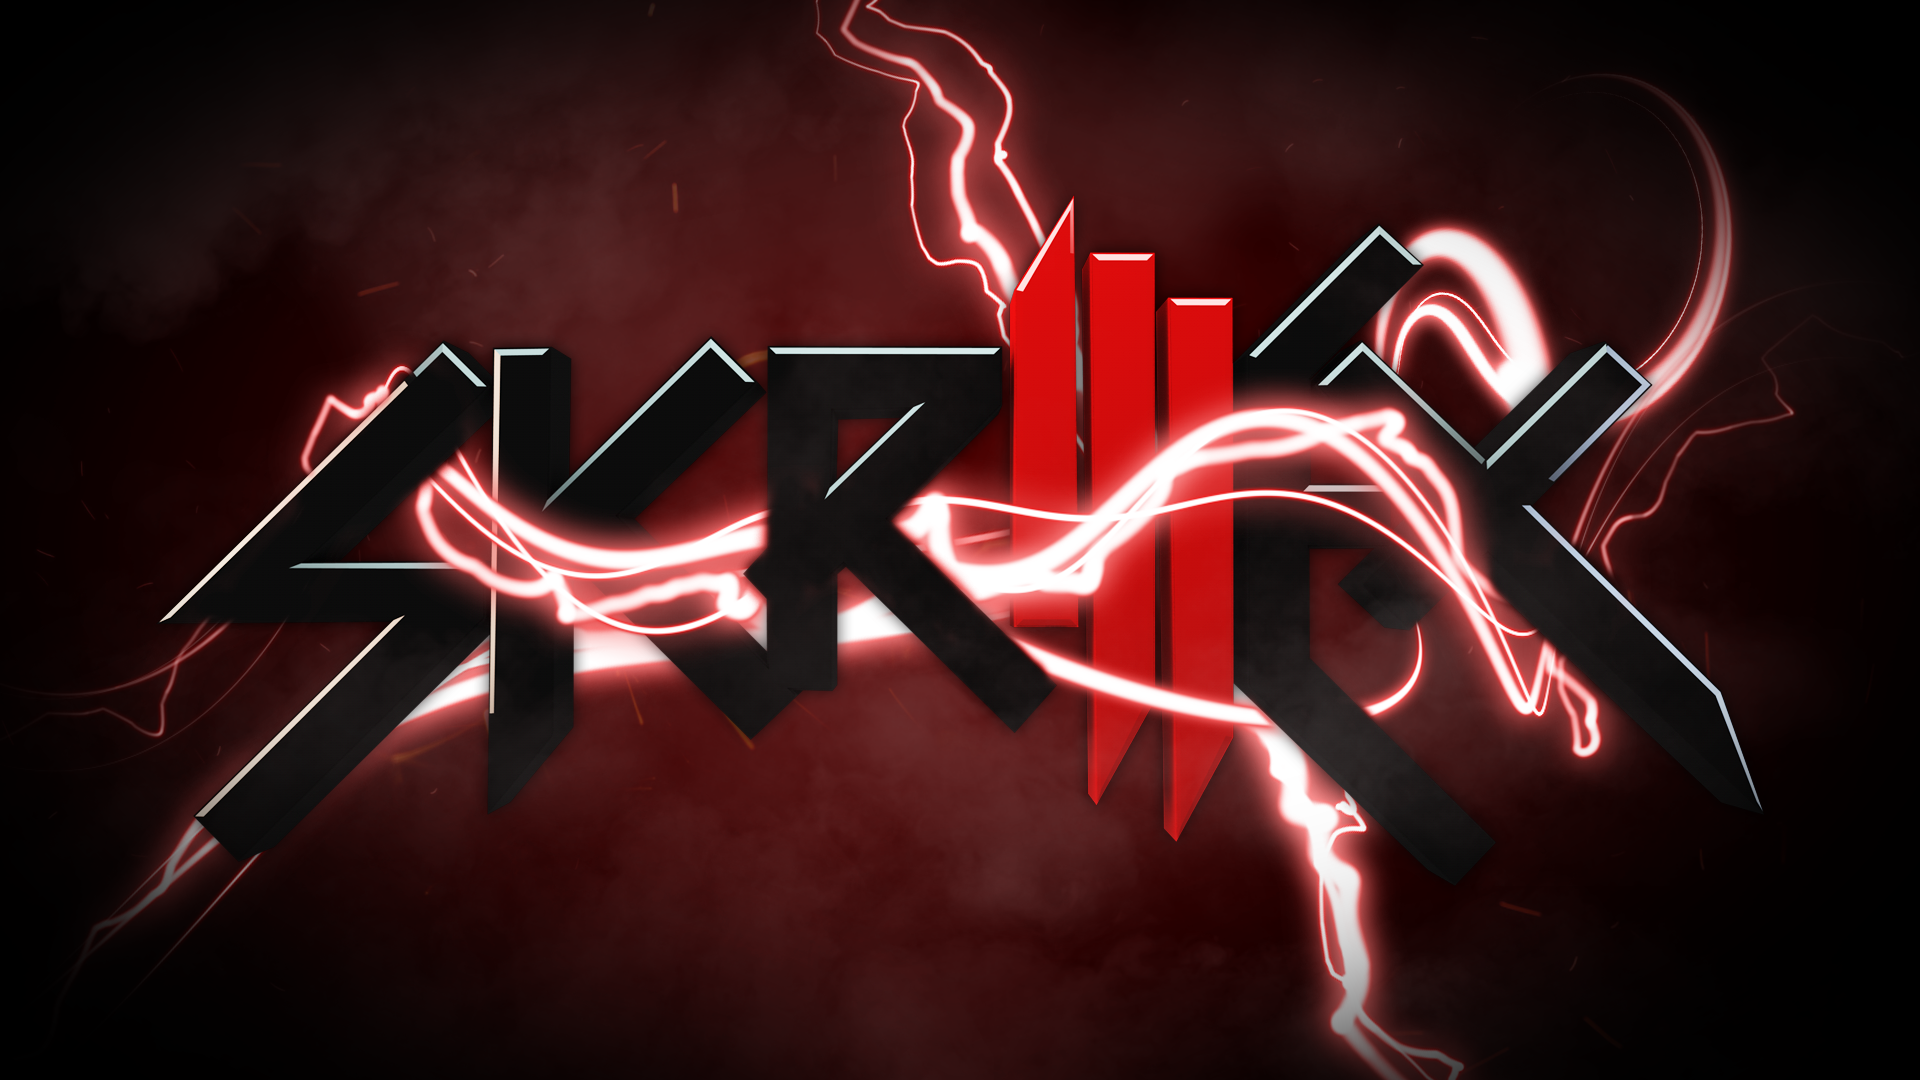 Animation Skrillex Logo Lightning HD Wallpapers Widescreen